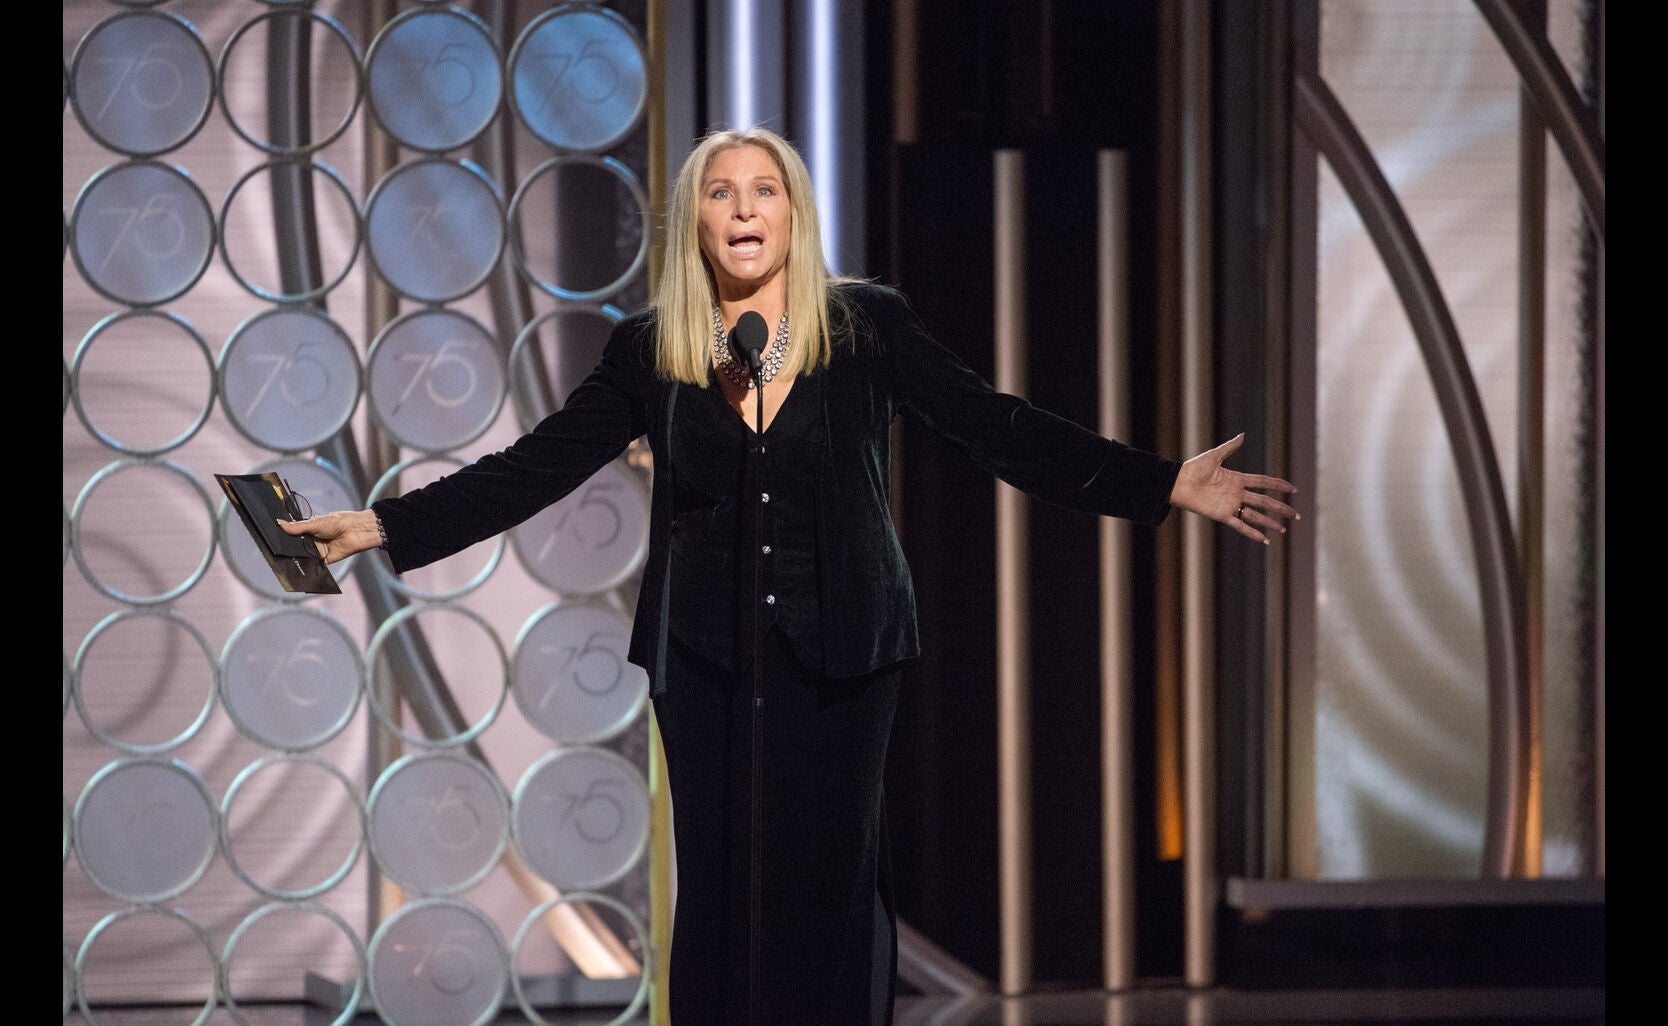 Barbra Streisand, Golden Globe winner